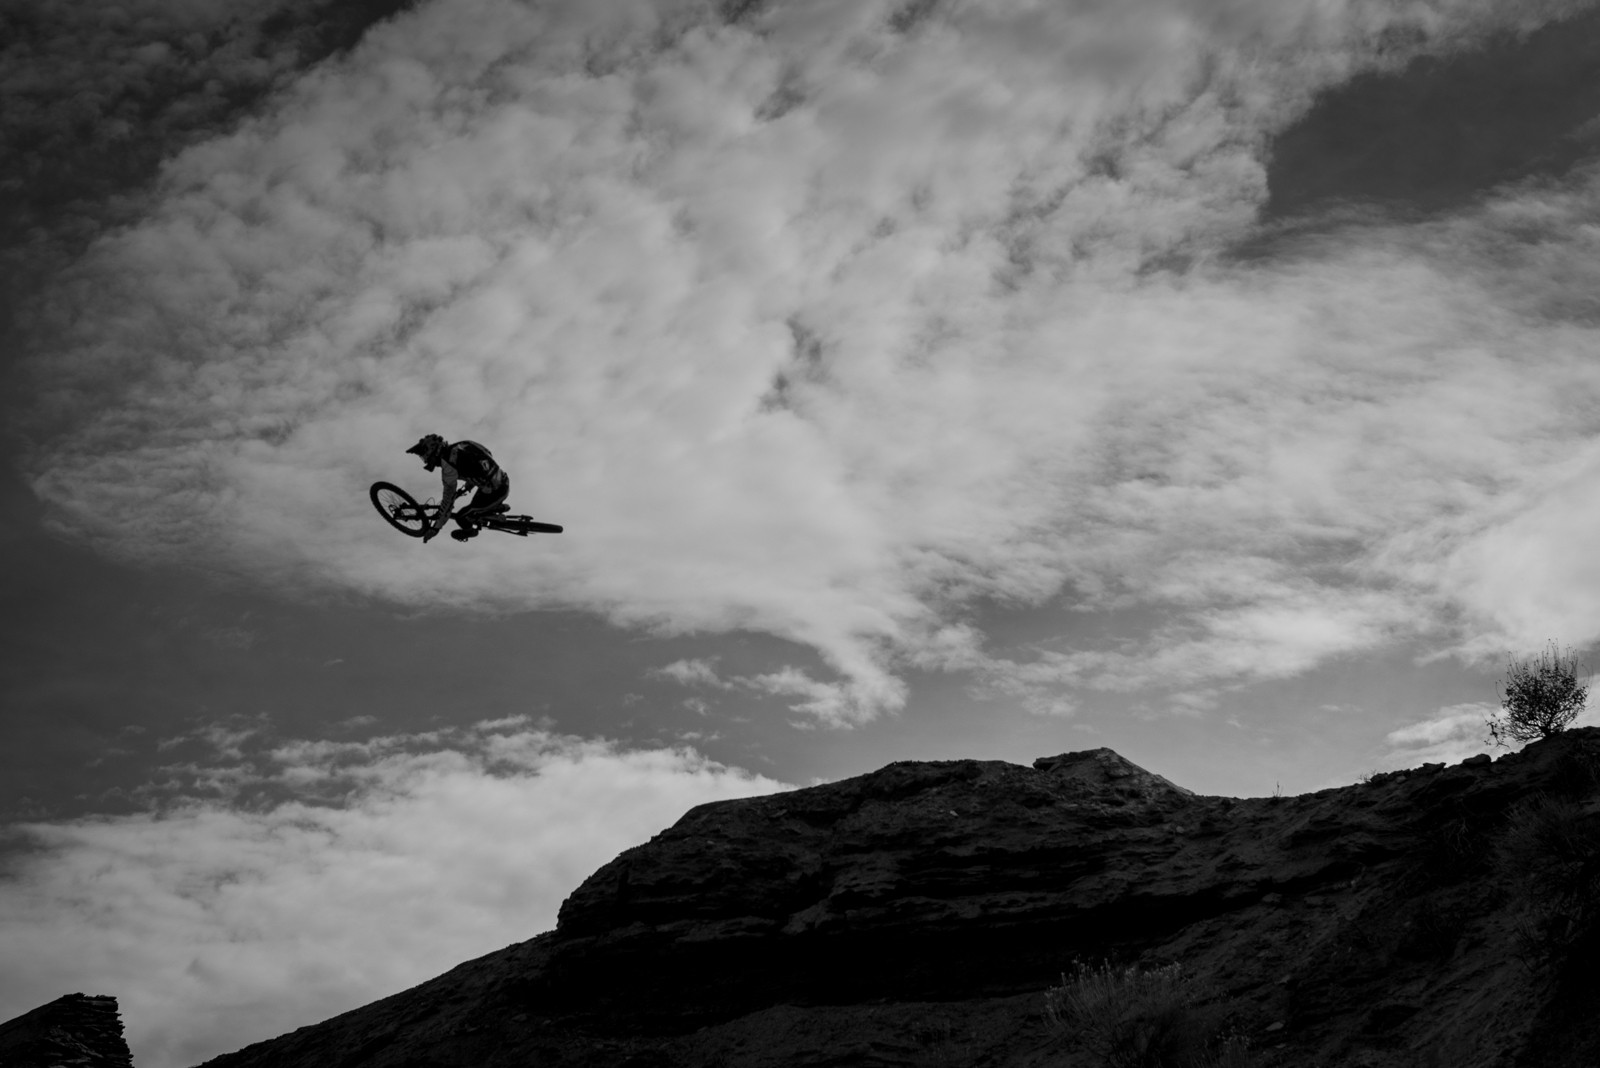 Kurt Sorge - 2015 Red Bull Rampage Finals - Mountain Biking Pictures - Vital MTB